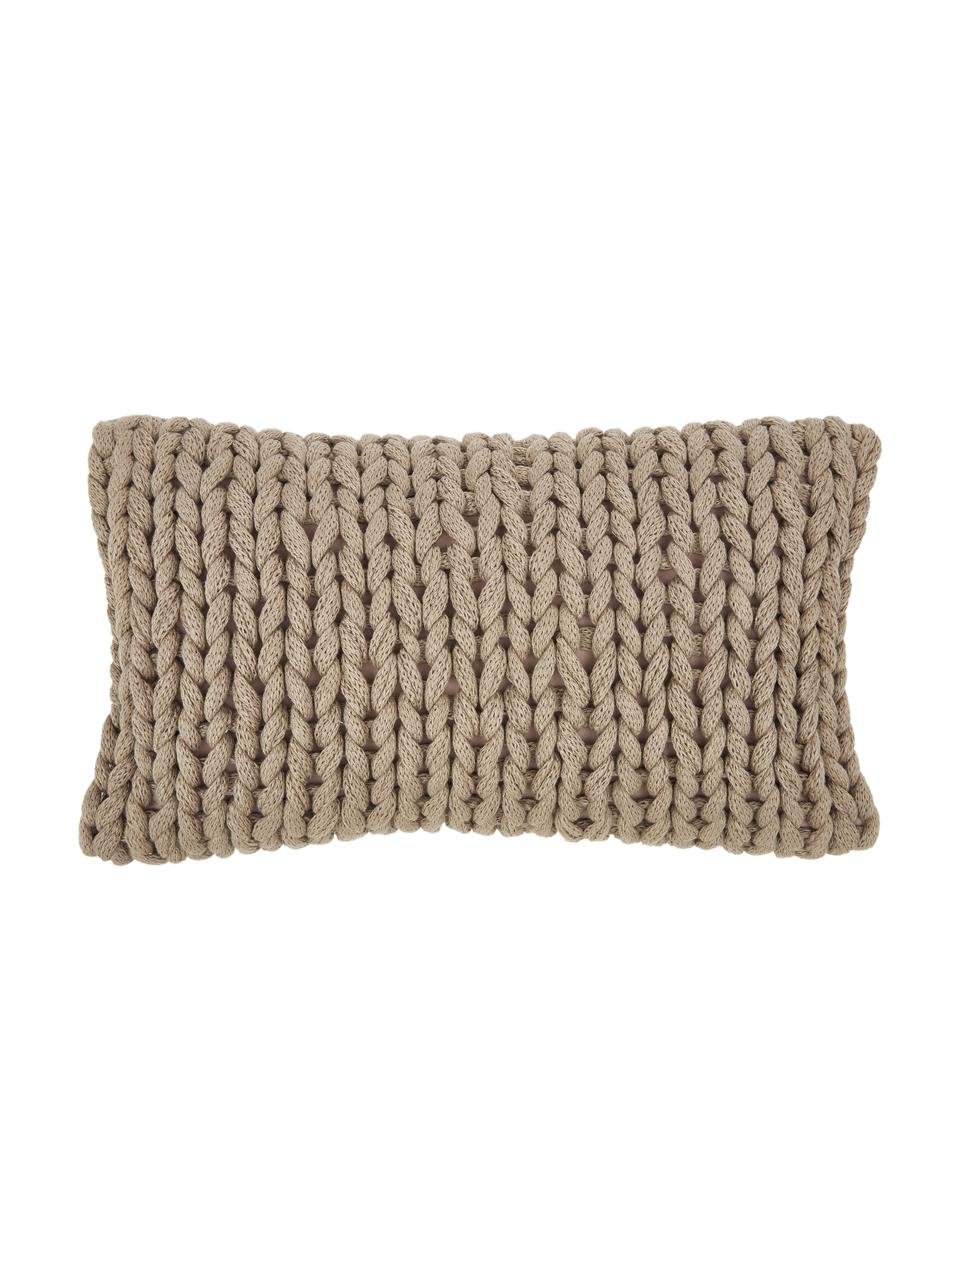 Housse de coussin grosse maille Adyna, Beige